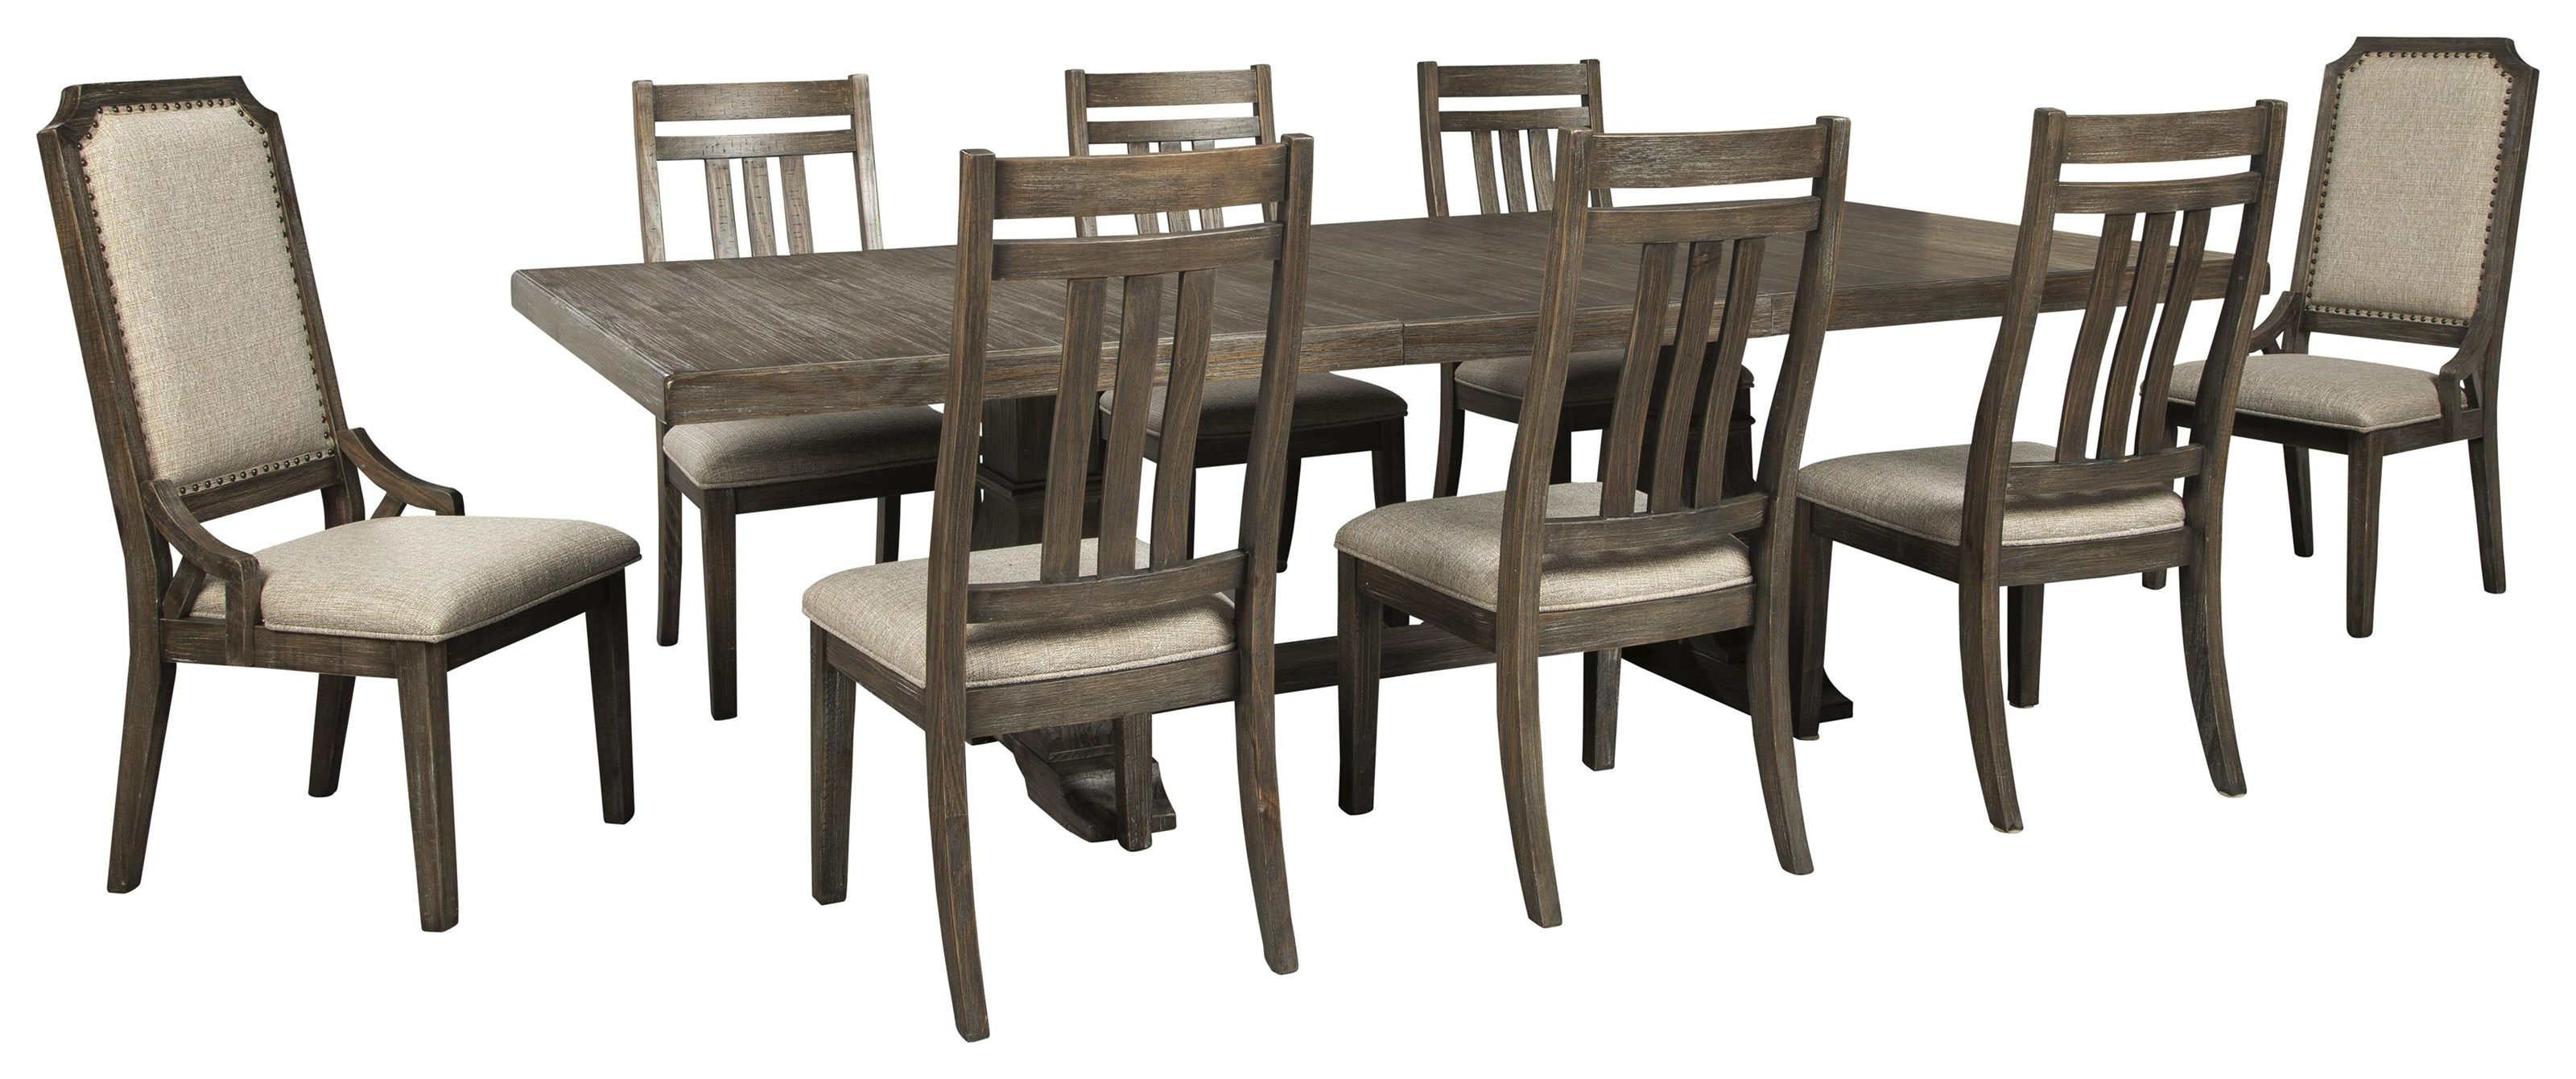 11 PC Dining Room Set